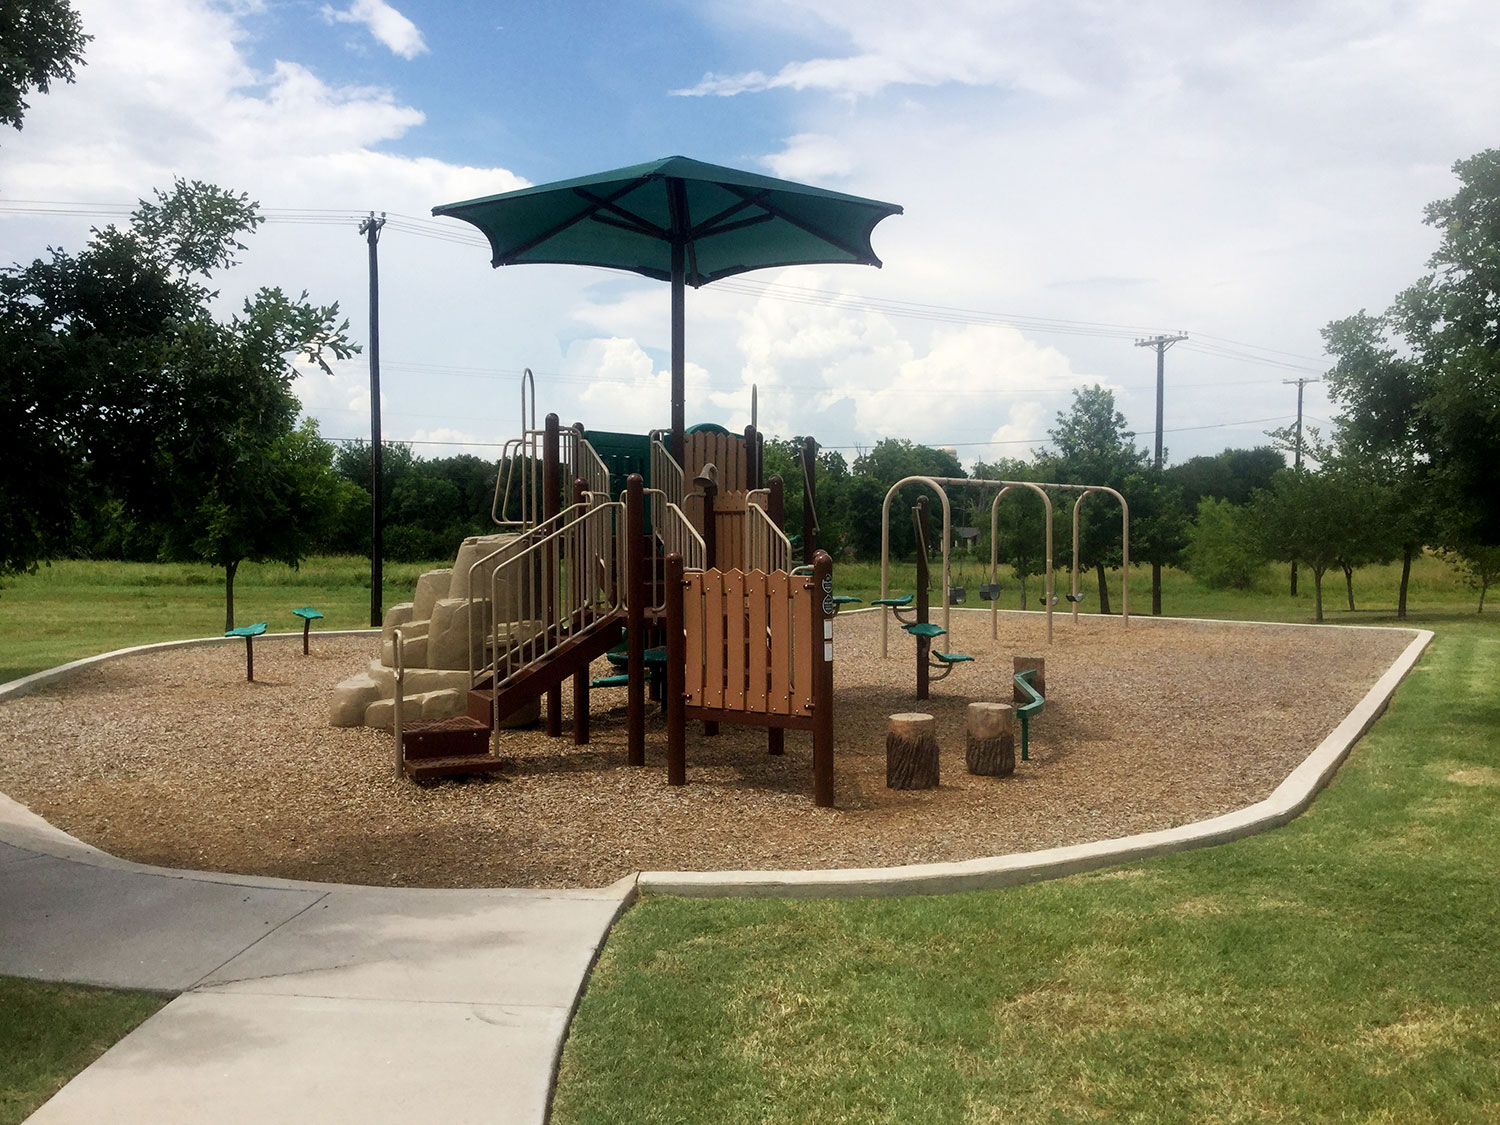 Playscape at Geneva Park in Georgetown, TX